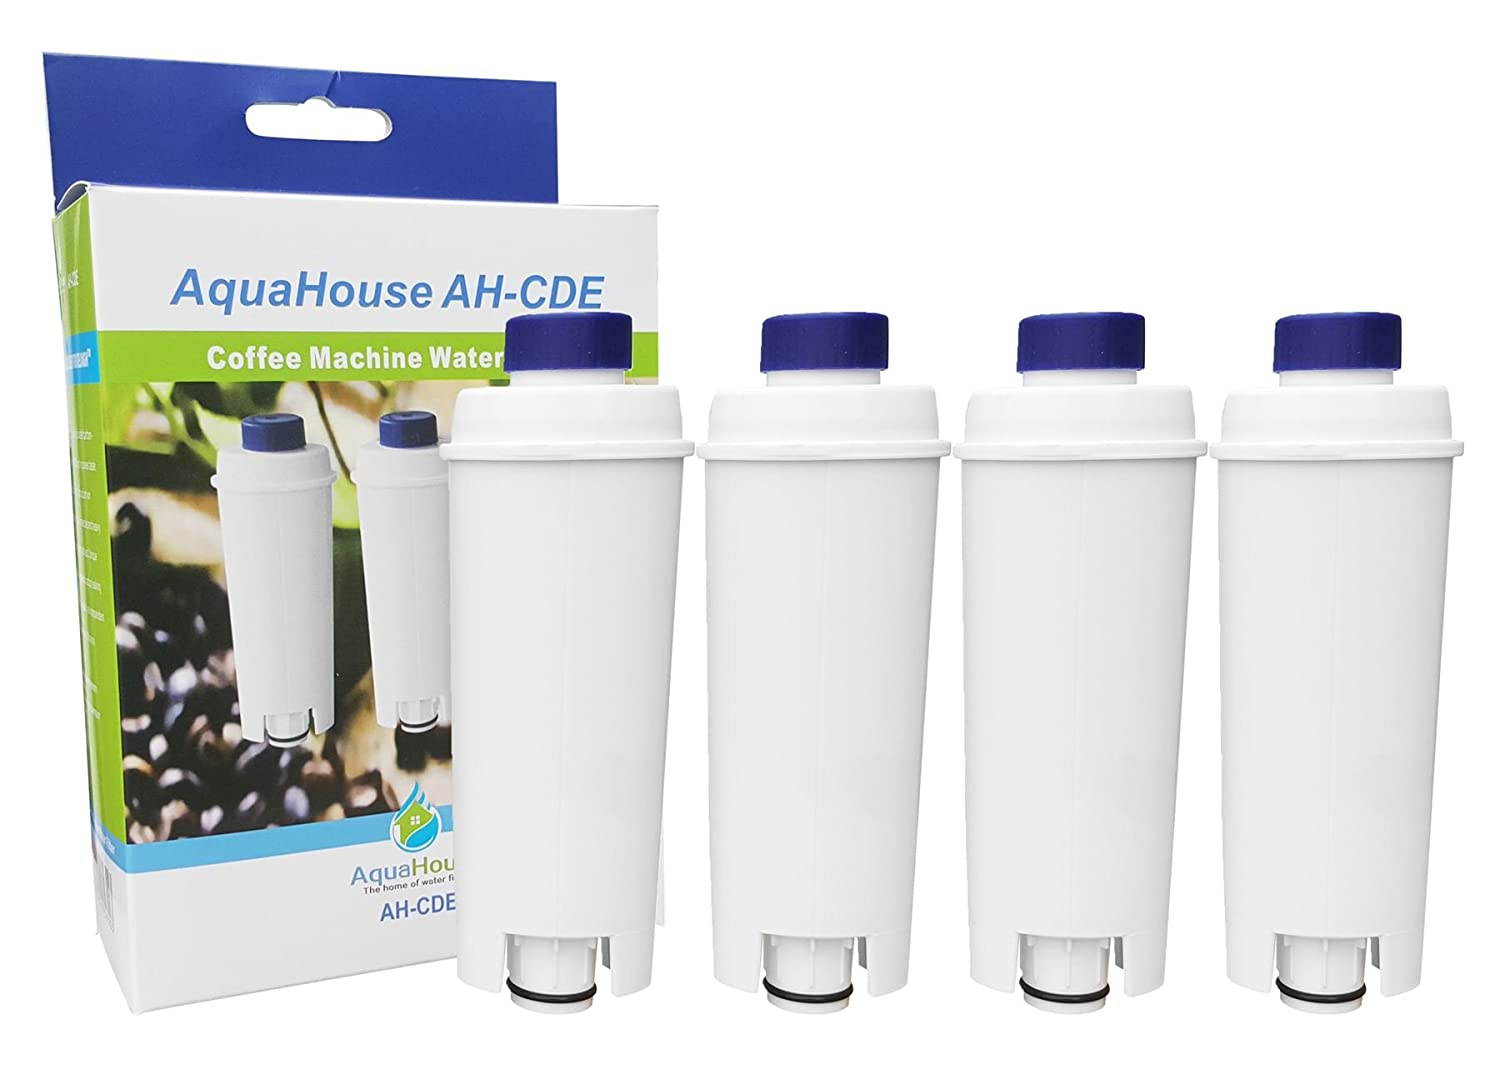 4x AquaHouse AH-CDE Compatible replacement filter for DeLonghi water filter cartridge DLSC002, SER3017, 5513292811 for Coffee Maker